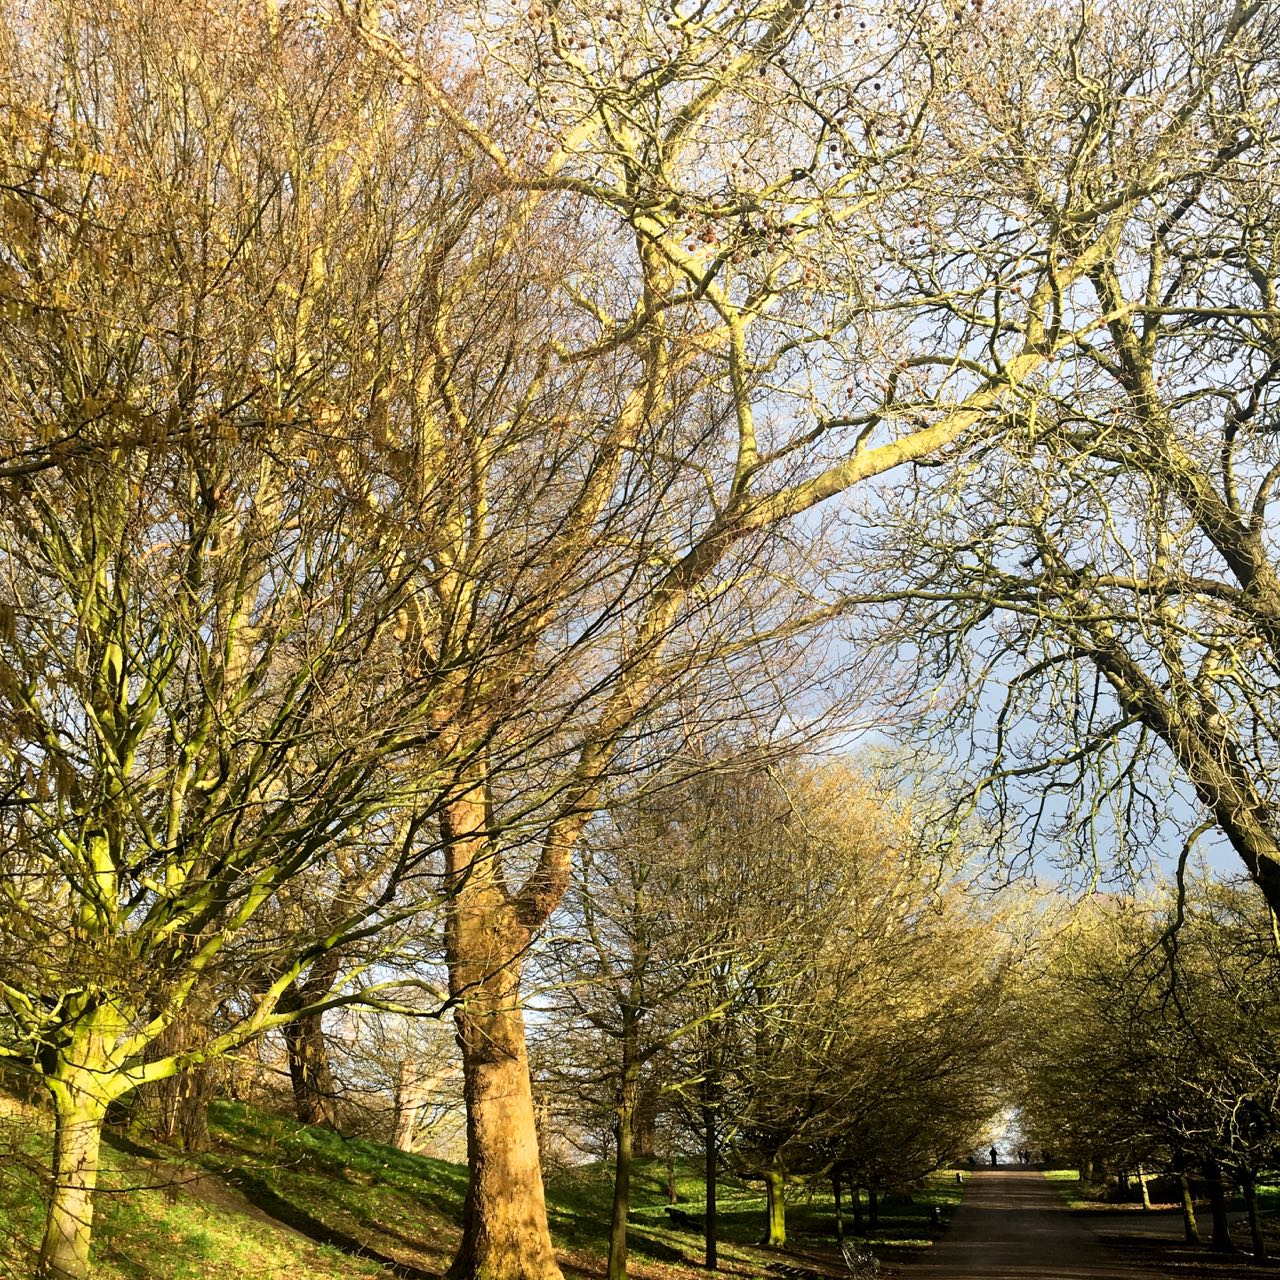 trees springing into life in Greenwich park